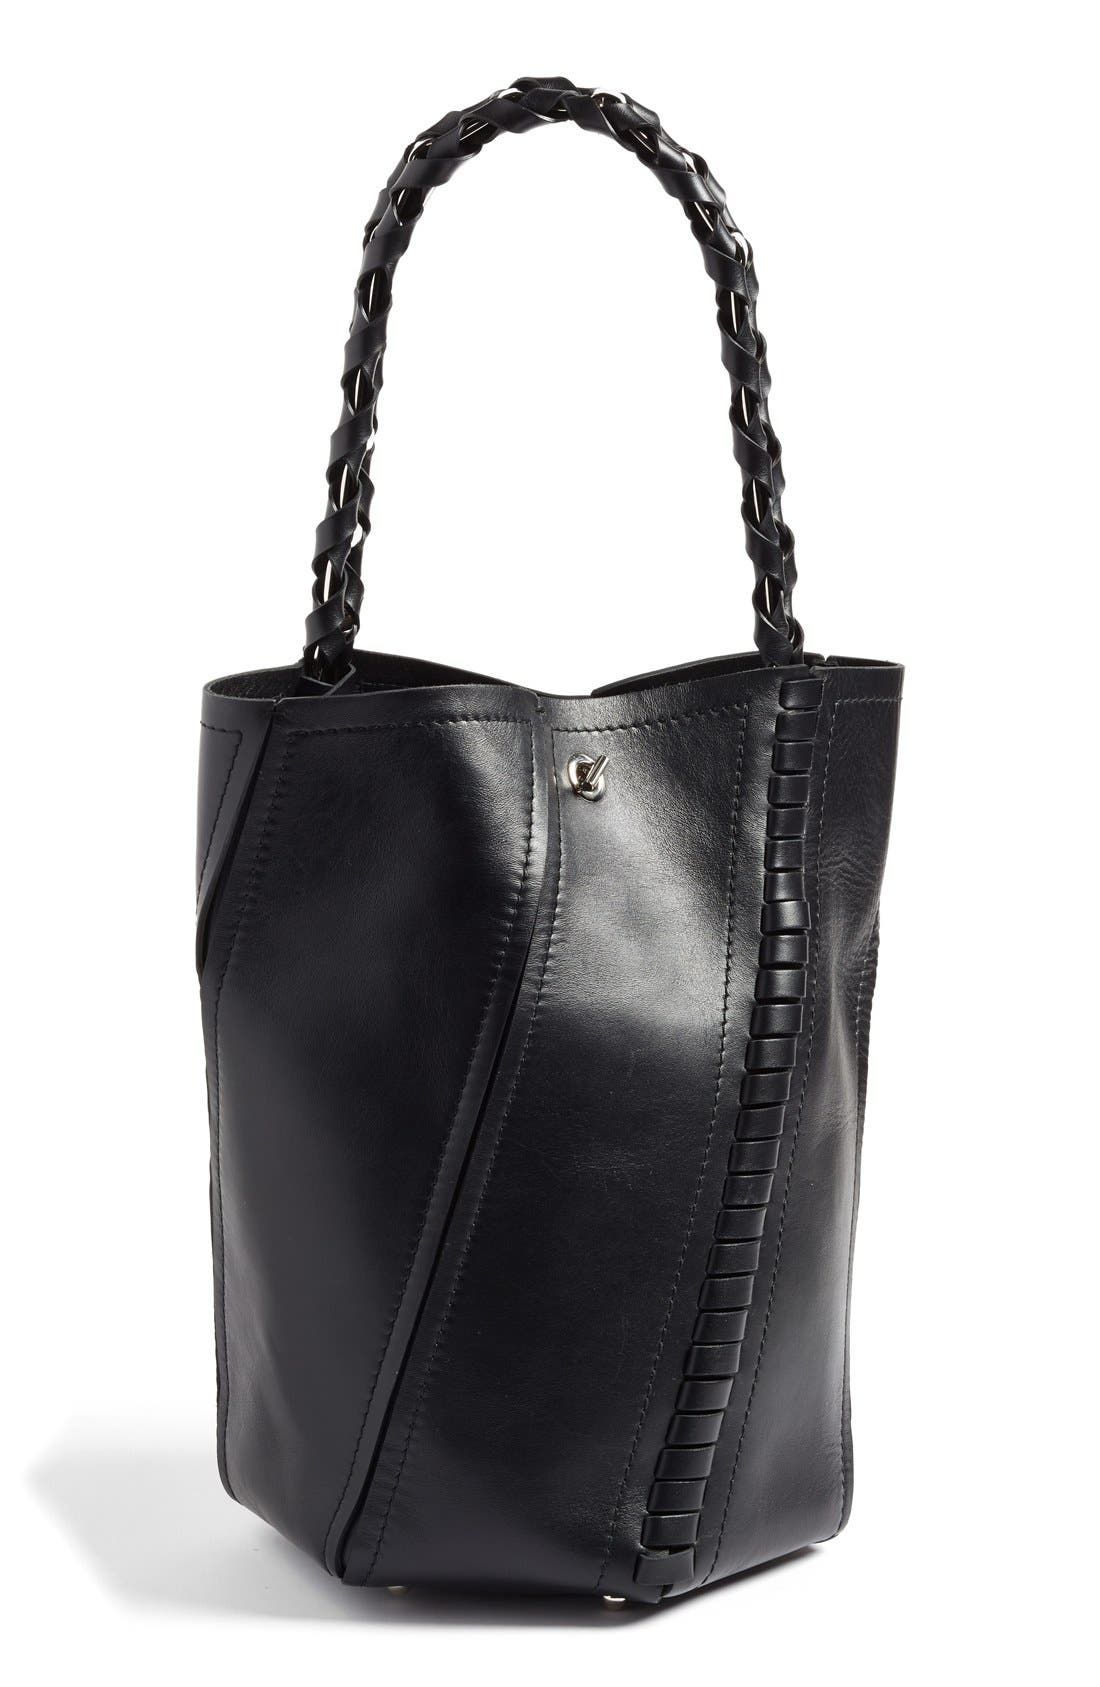 Proenza Schouler 'Medium Hex' Whipstitch Leather Bucket Bag